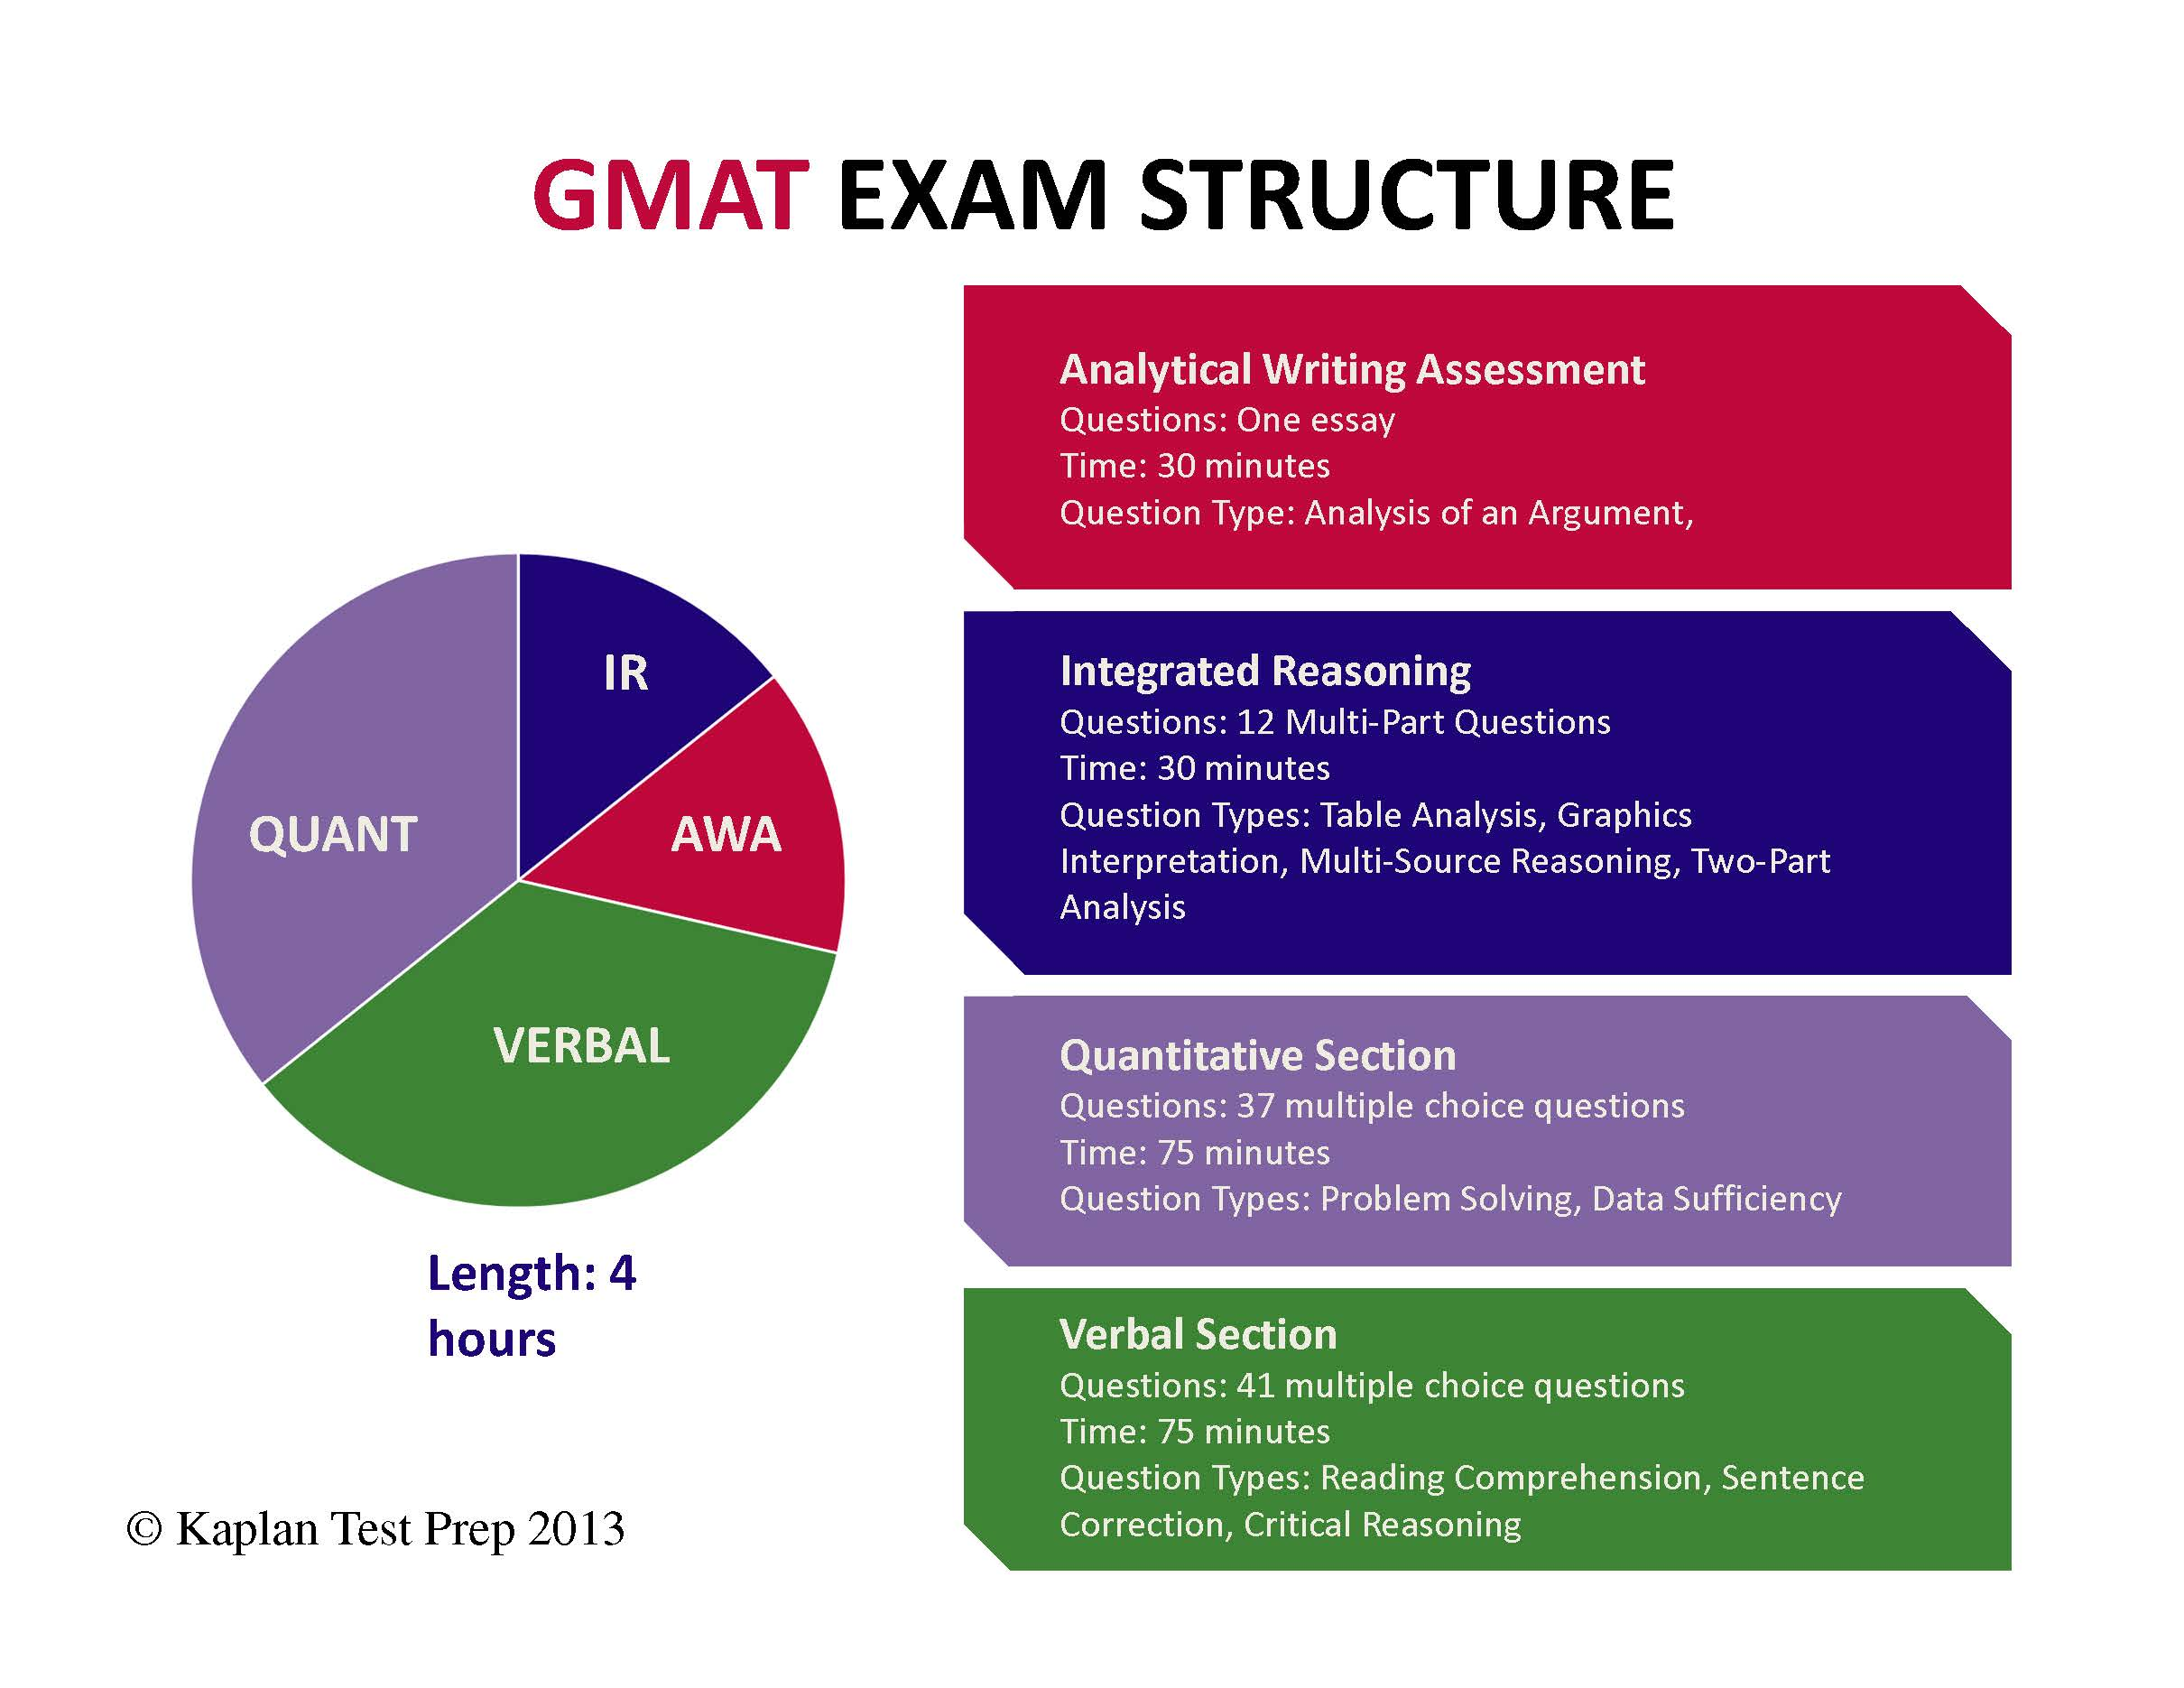 GMAT Exam Structure